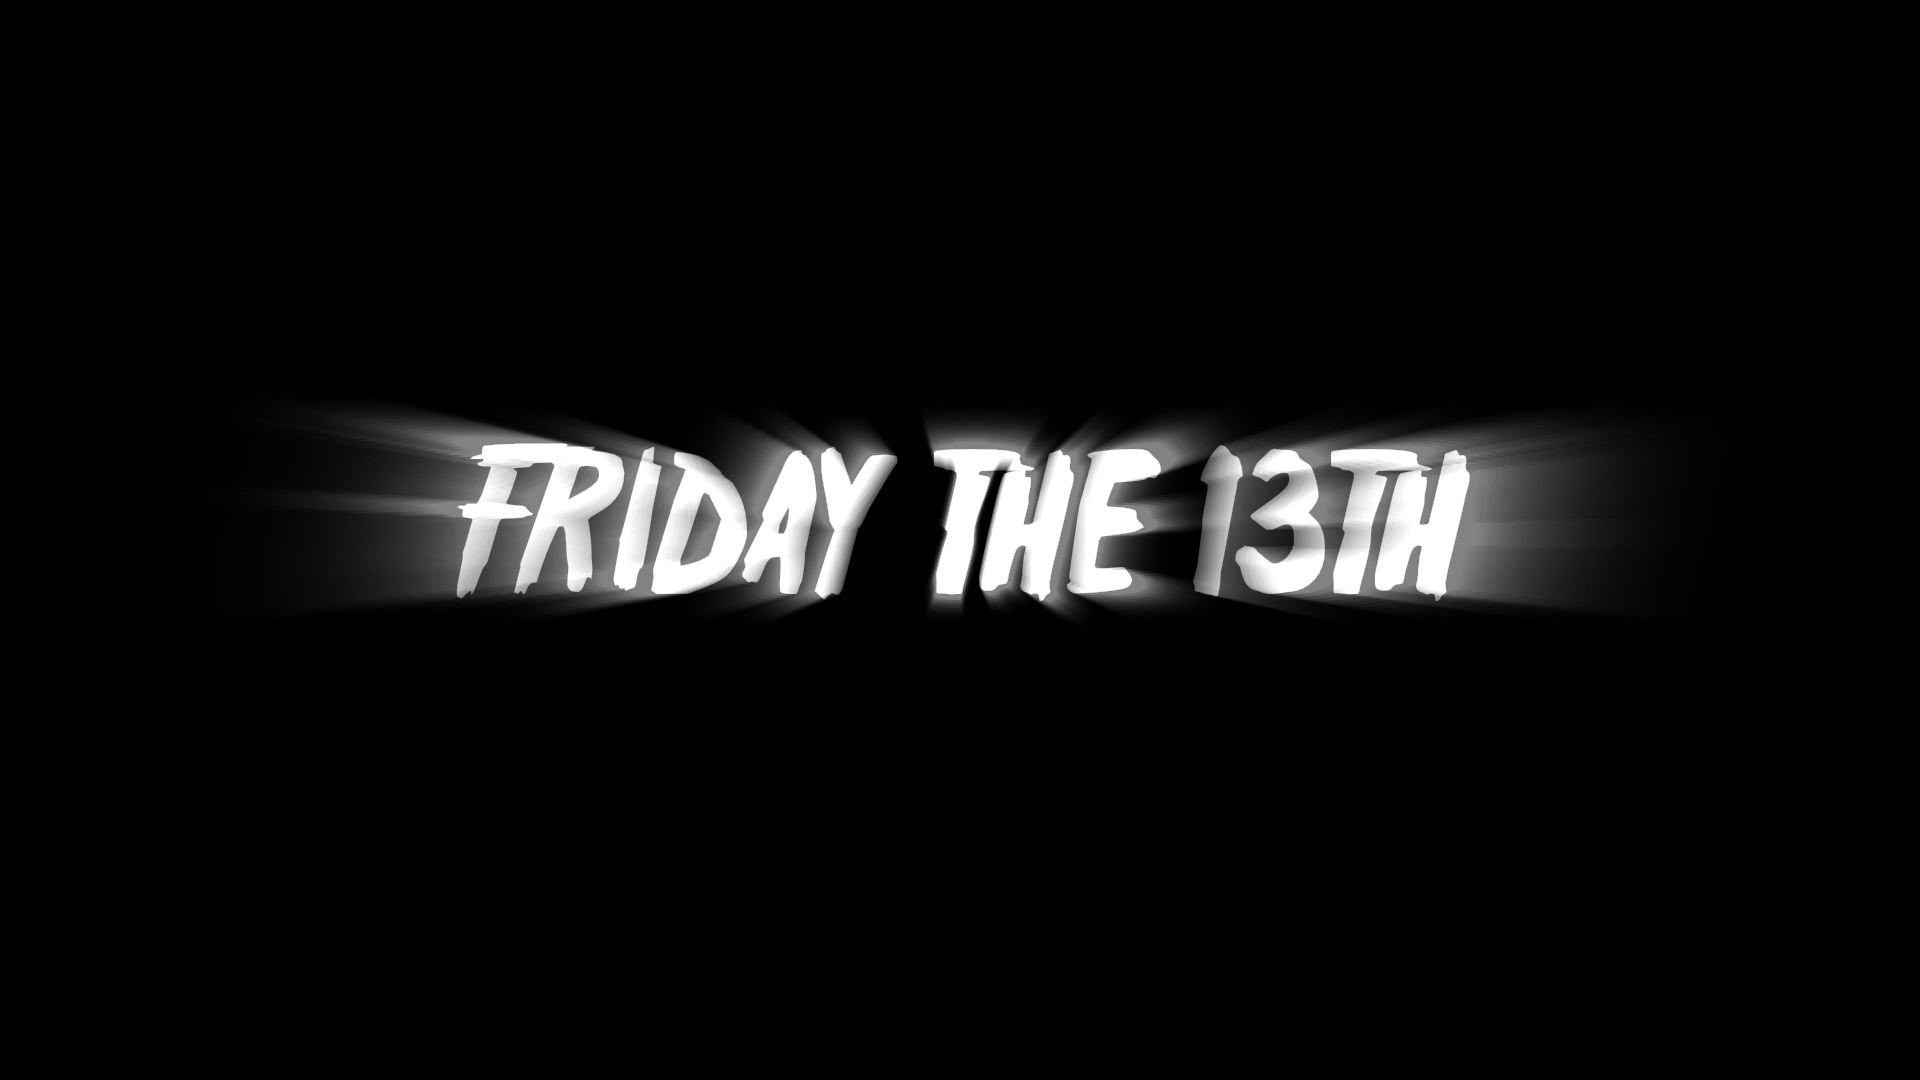 friday the 13th wallpapers 80 background pictures